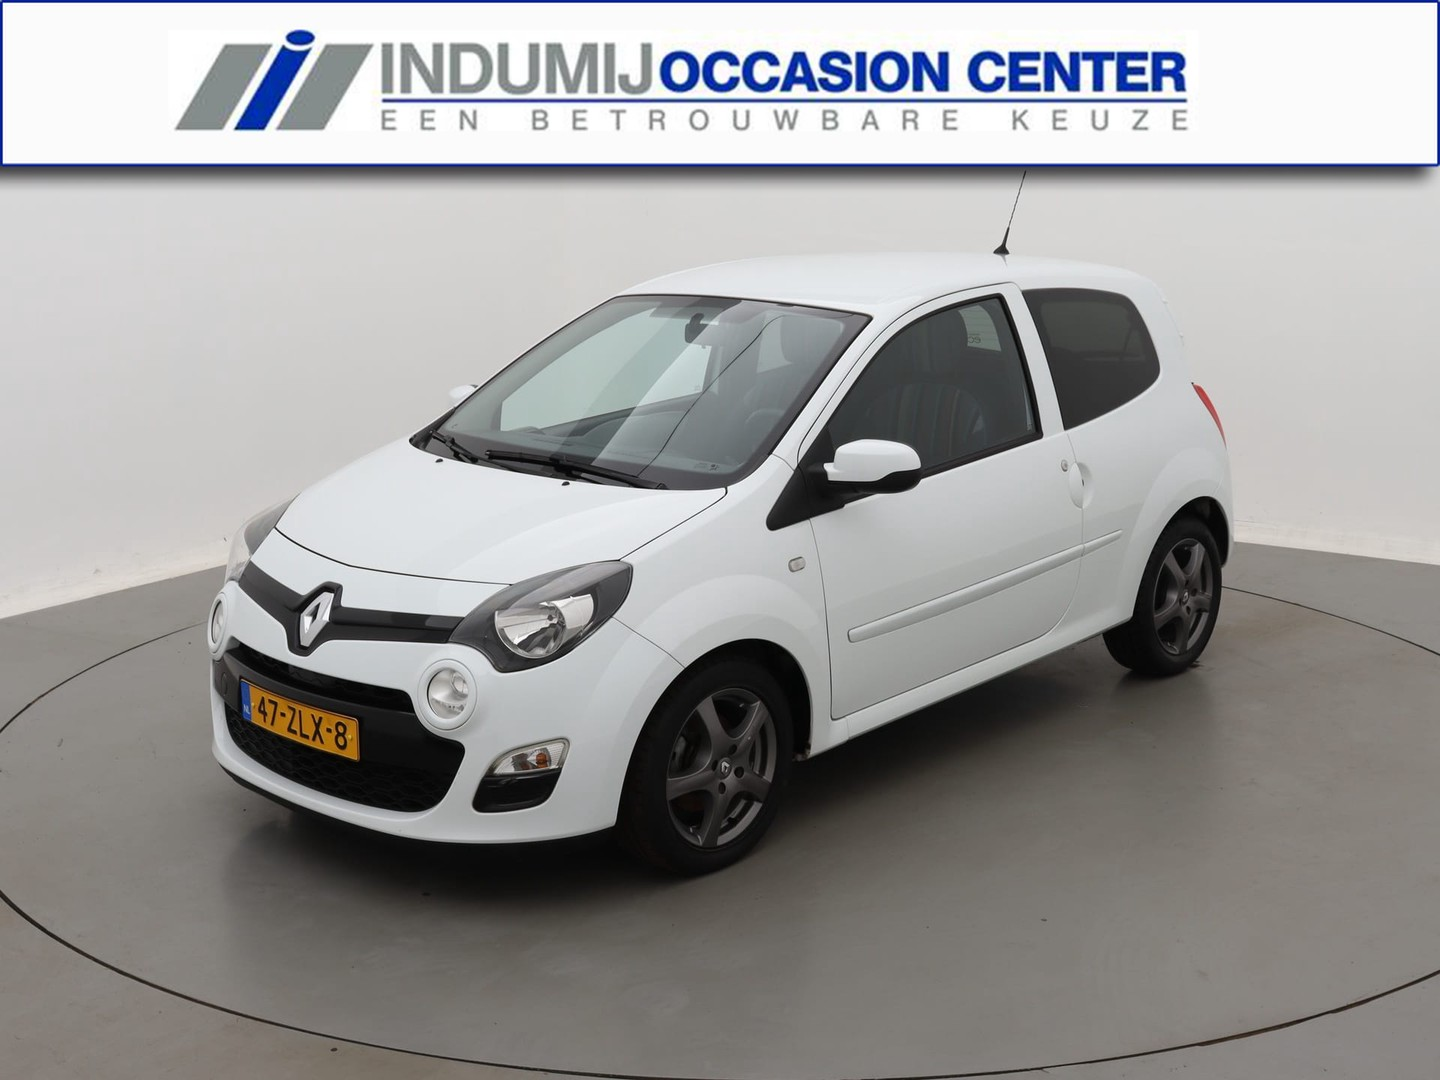 Renault Twingo 1.2 16v collection / airco / cruise control / centr. vergrendeling